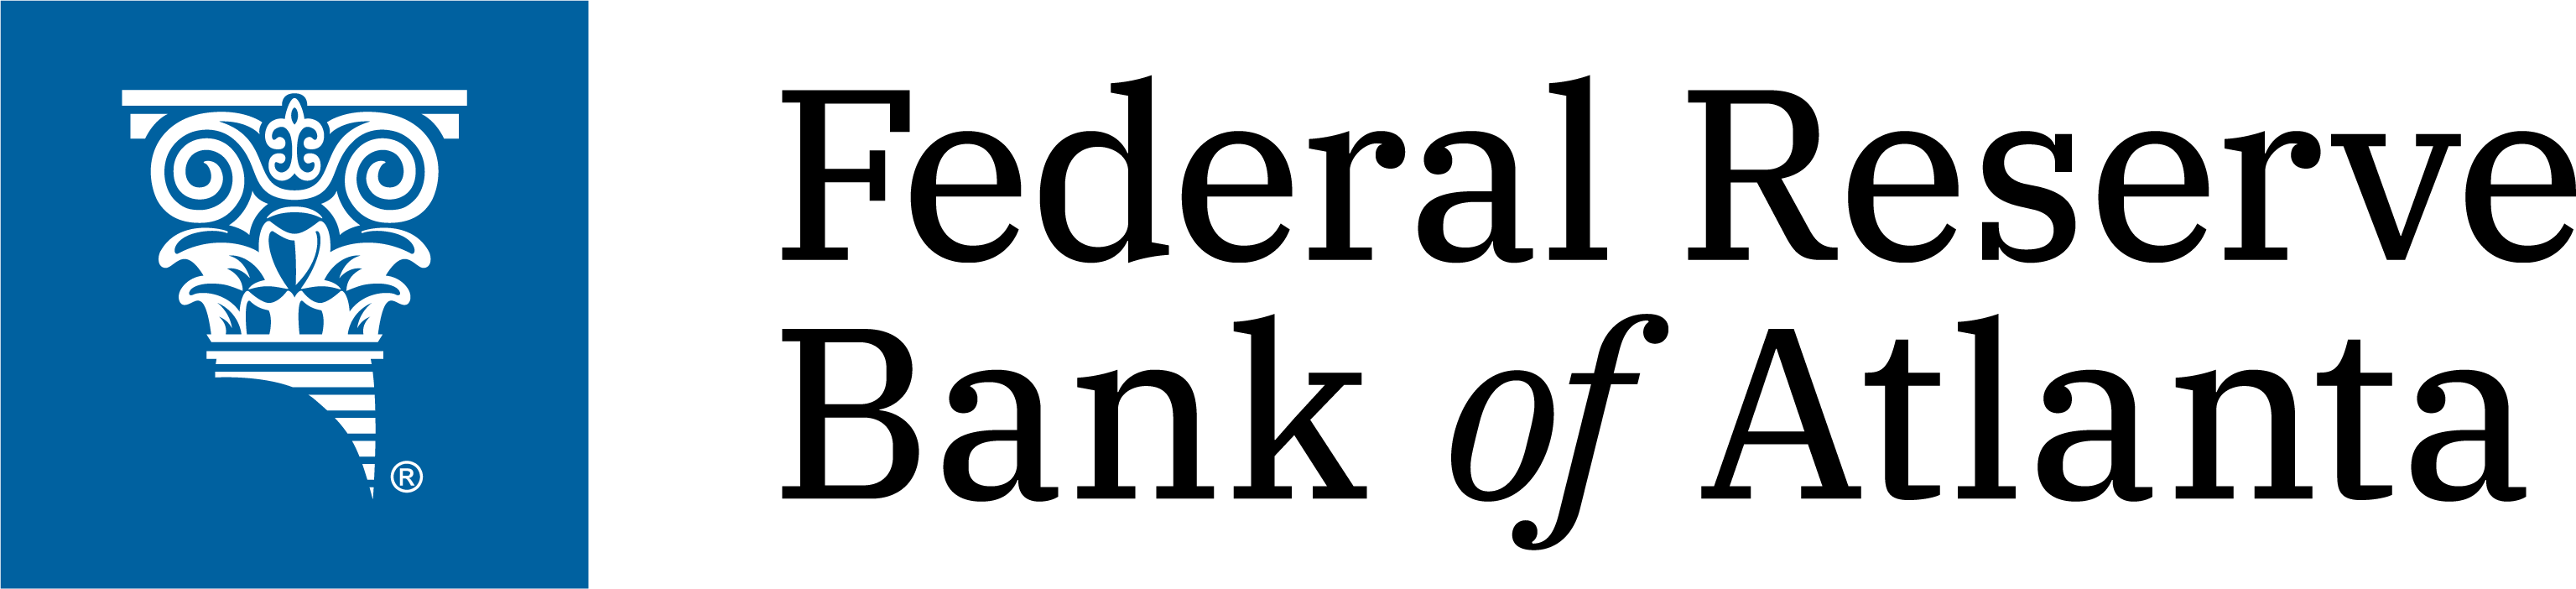 Federal Reserve Bank of Atlanta